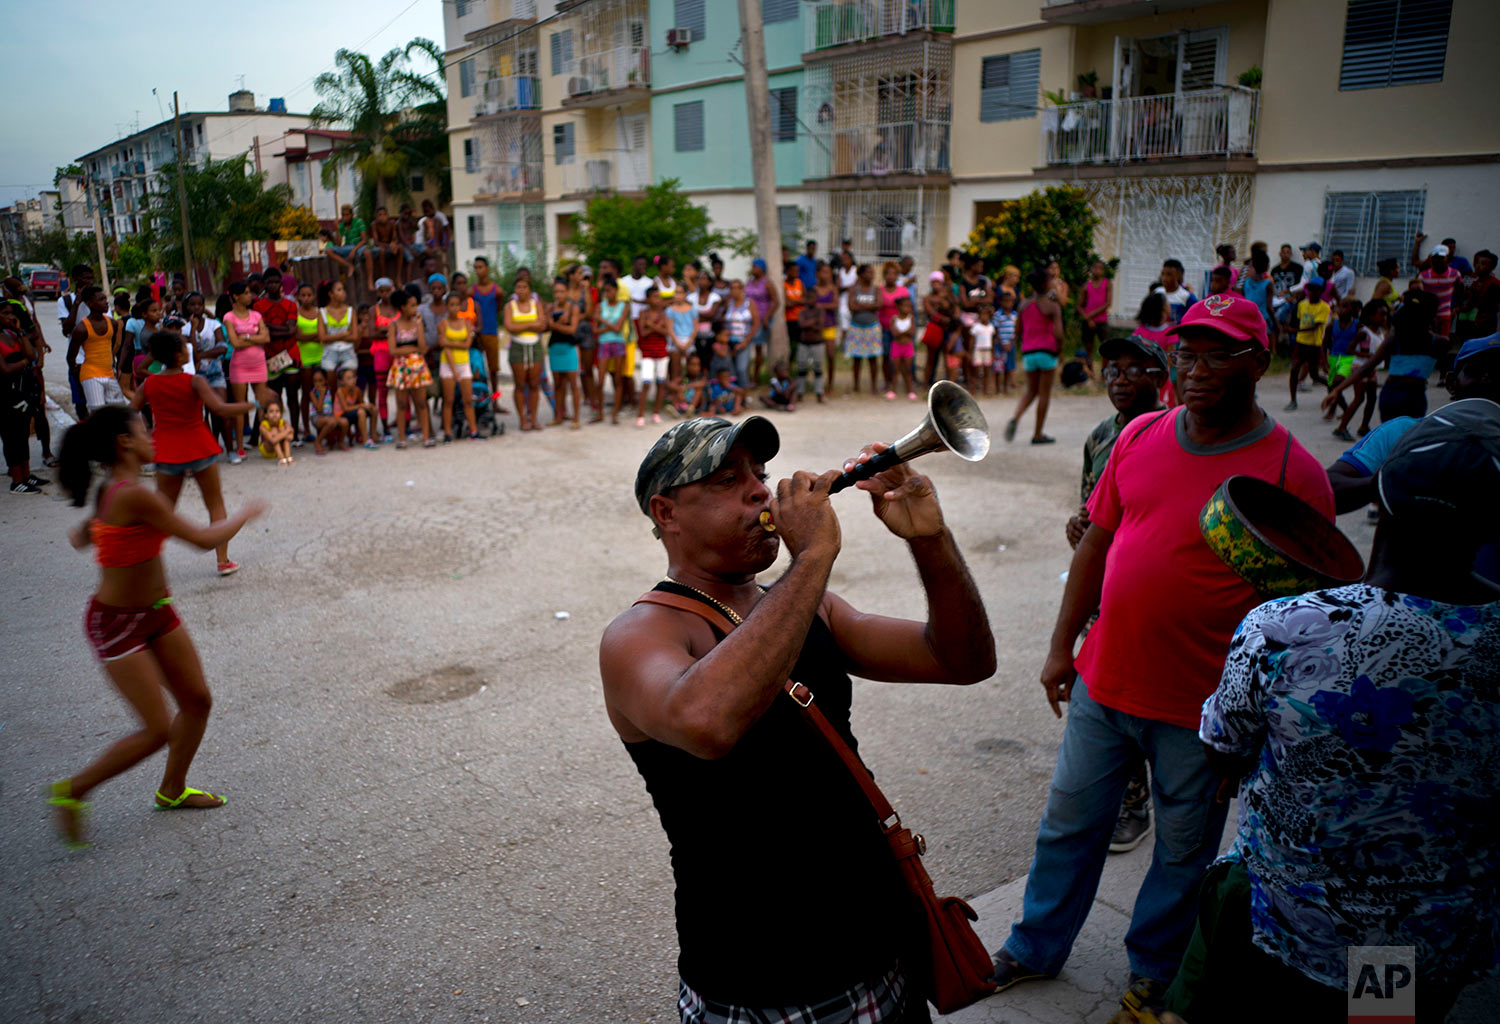 Cubans practice for carnival in Guantanamo, Cuba, July 24, 2018. Guantanamo's carnival, which runs Aug. 9-12, show cases parades of dancers, floats that compete for prizes, food stands and street music.